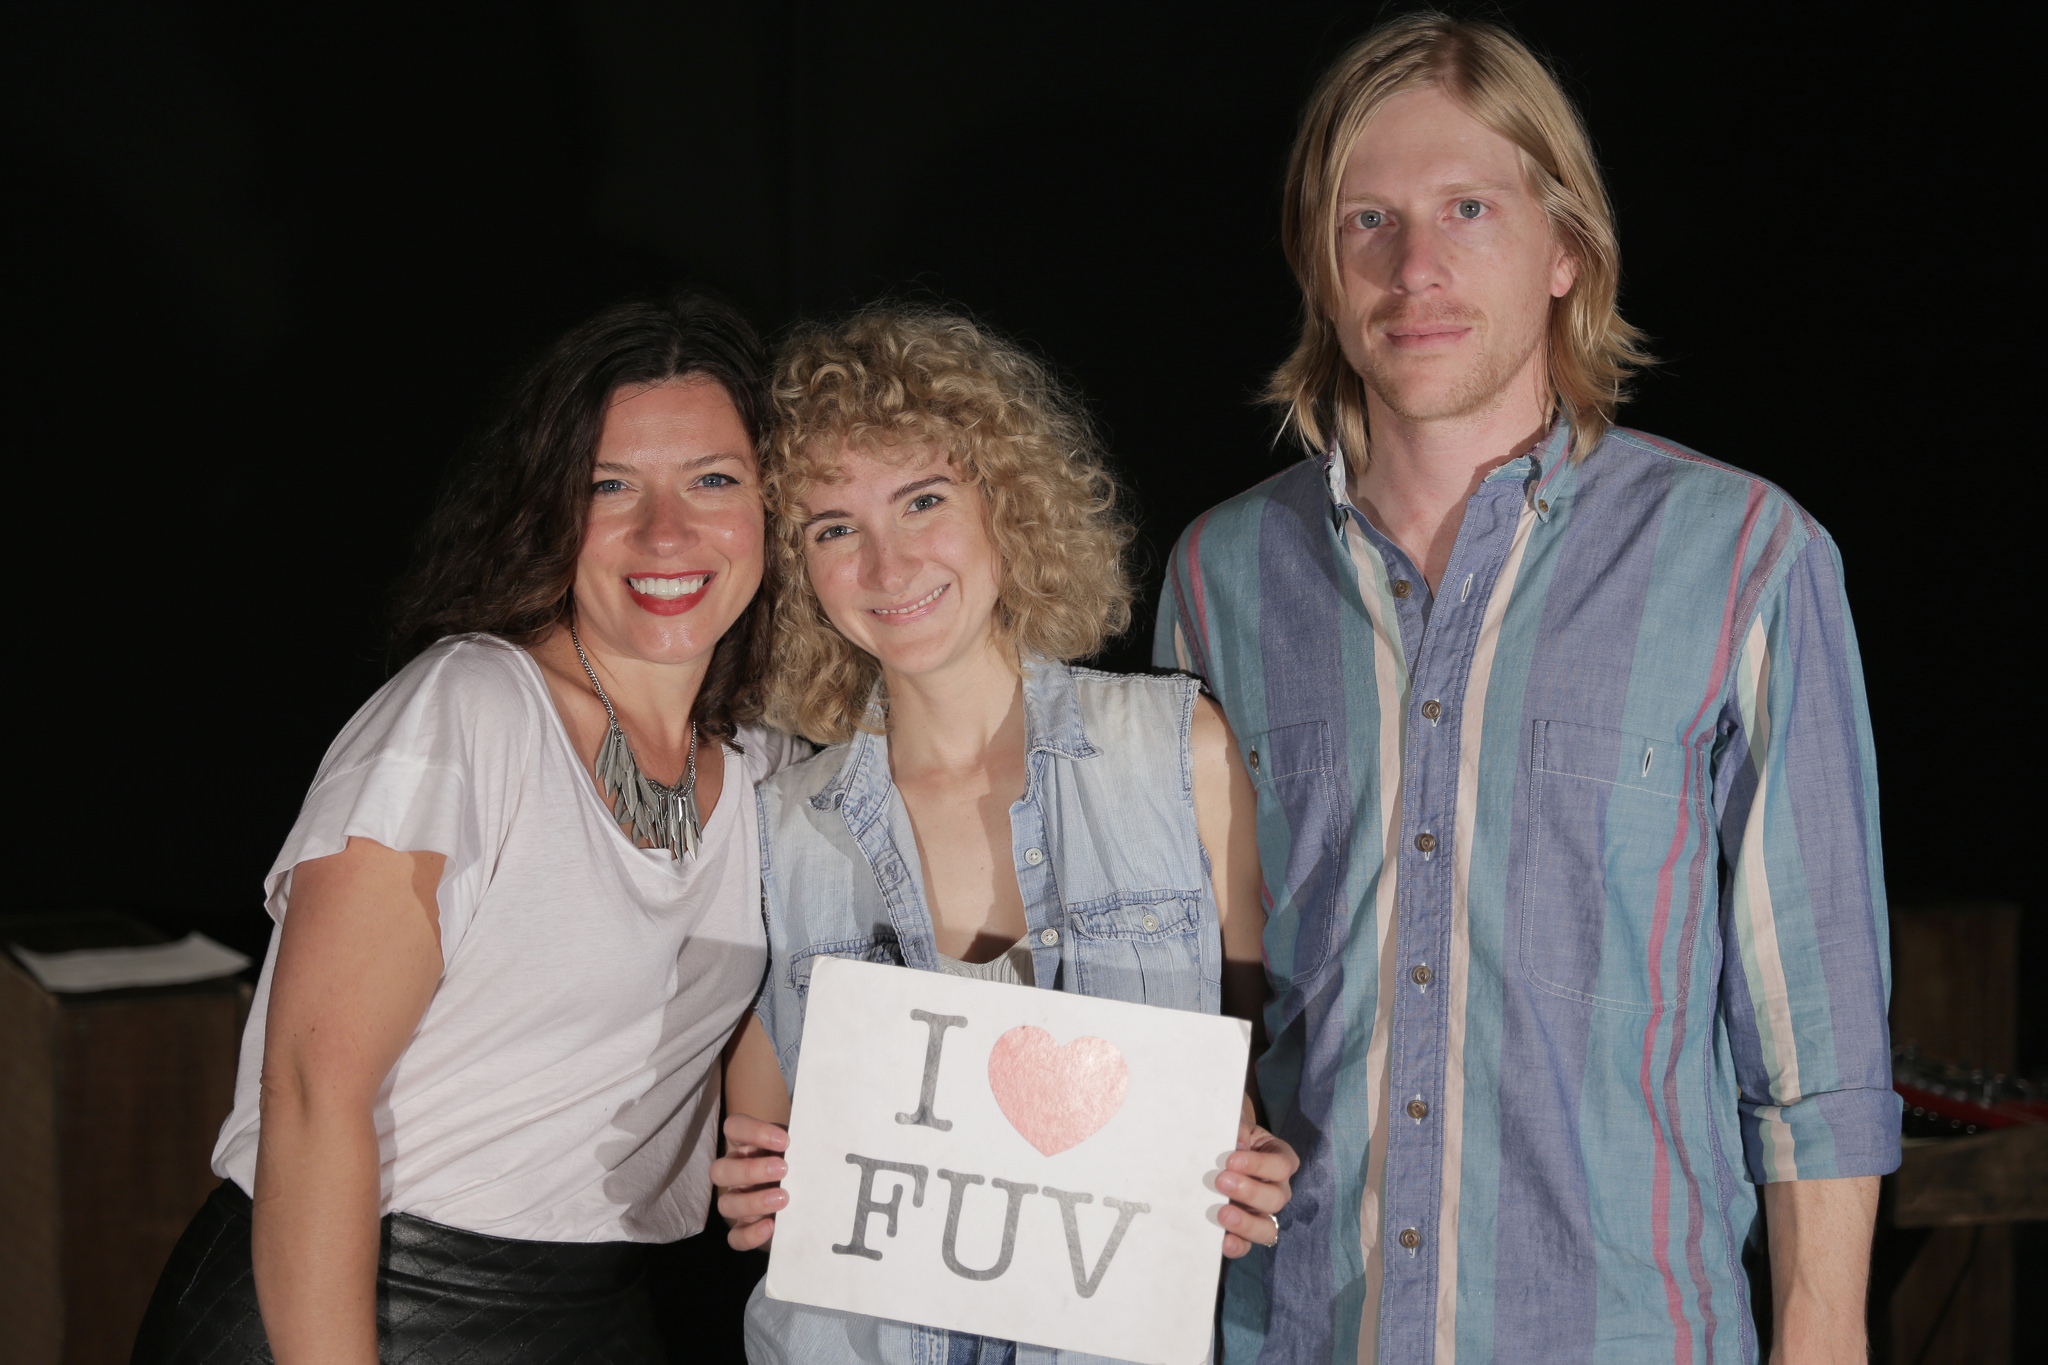 Hear an FUV Live session with Tennis tonight at 9.